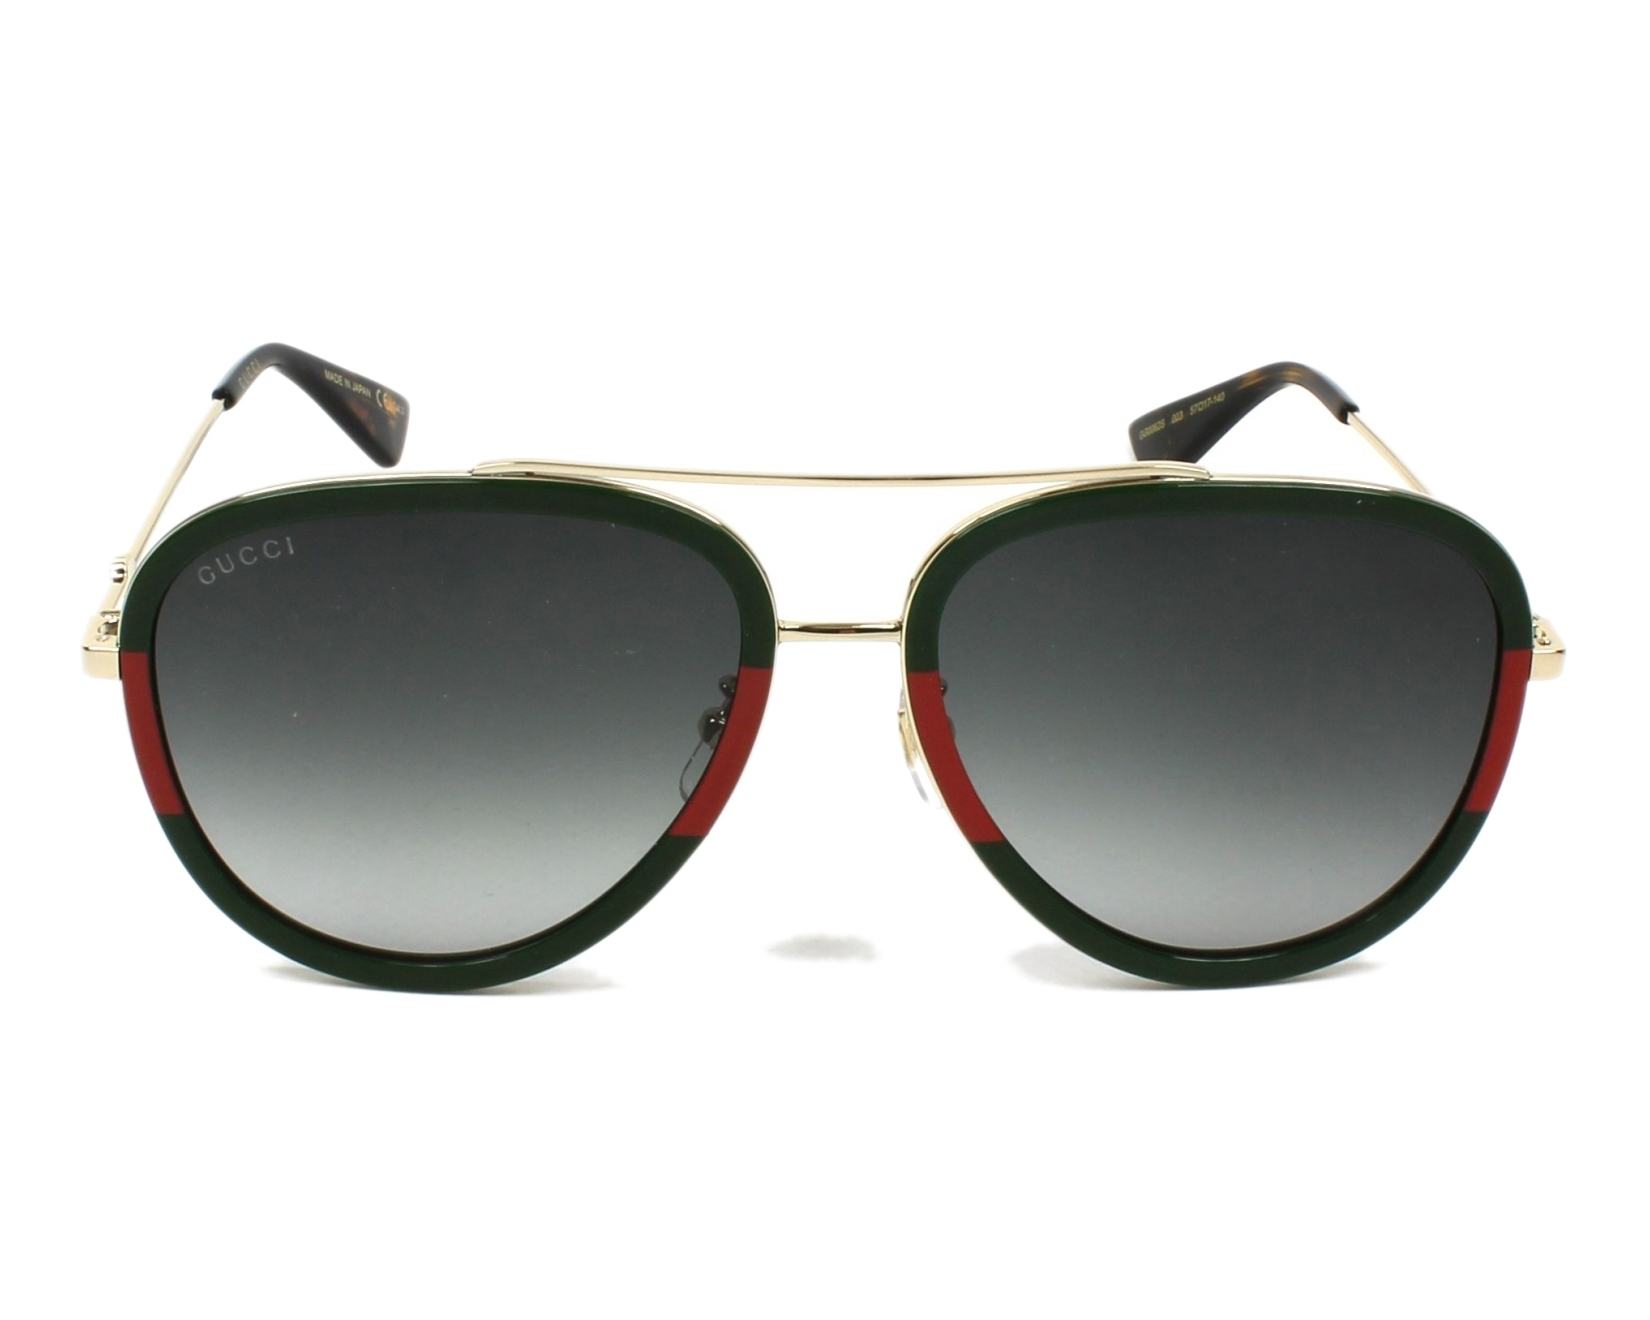 499076acc63 Sunglasses Gucci GG-0062-S 003 57-17 Gold Green front view